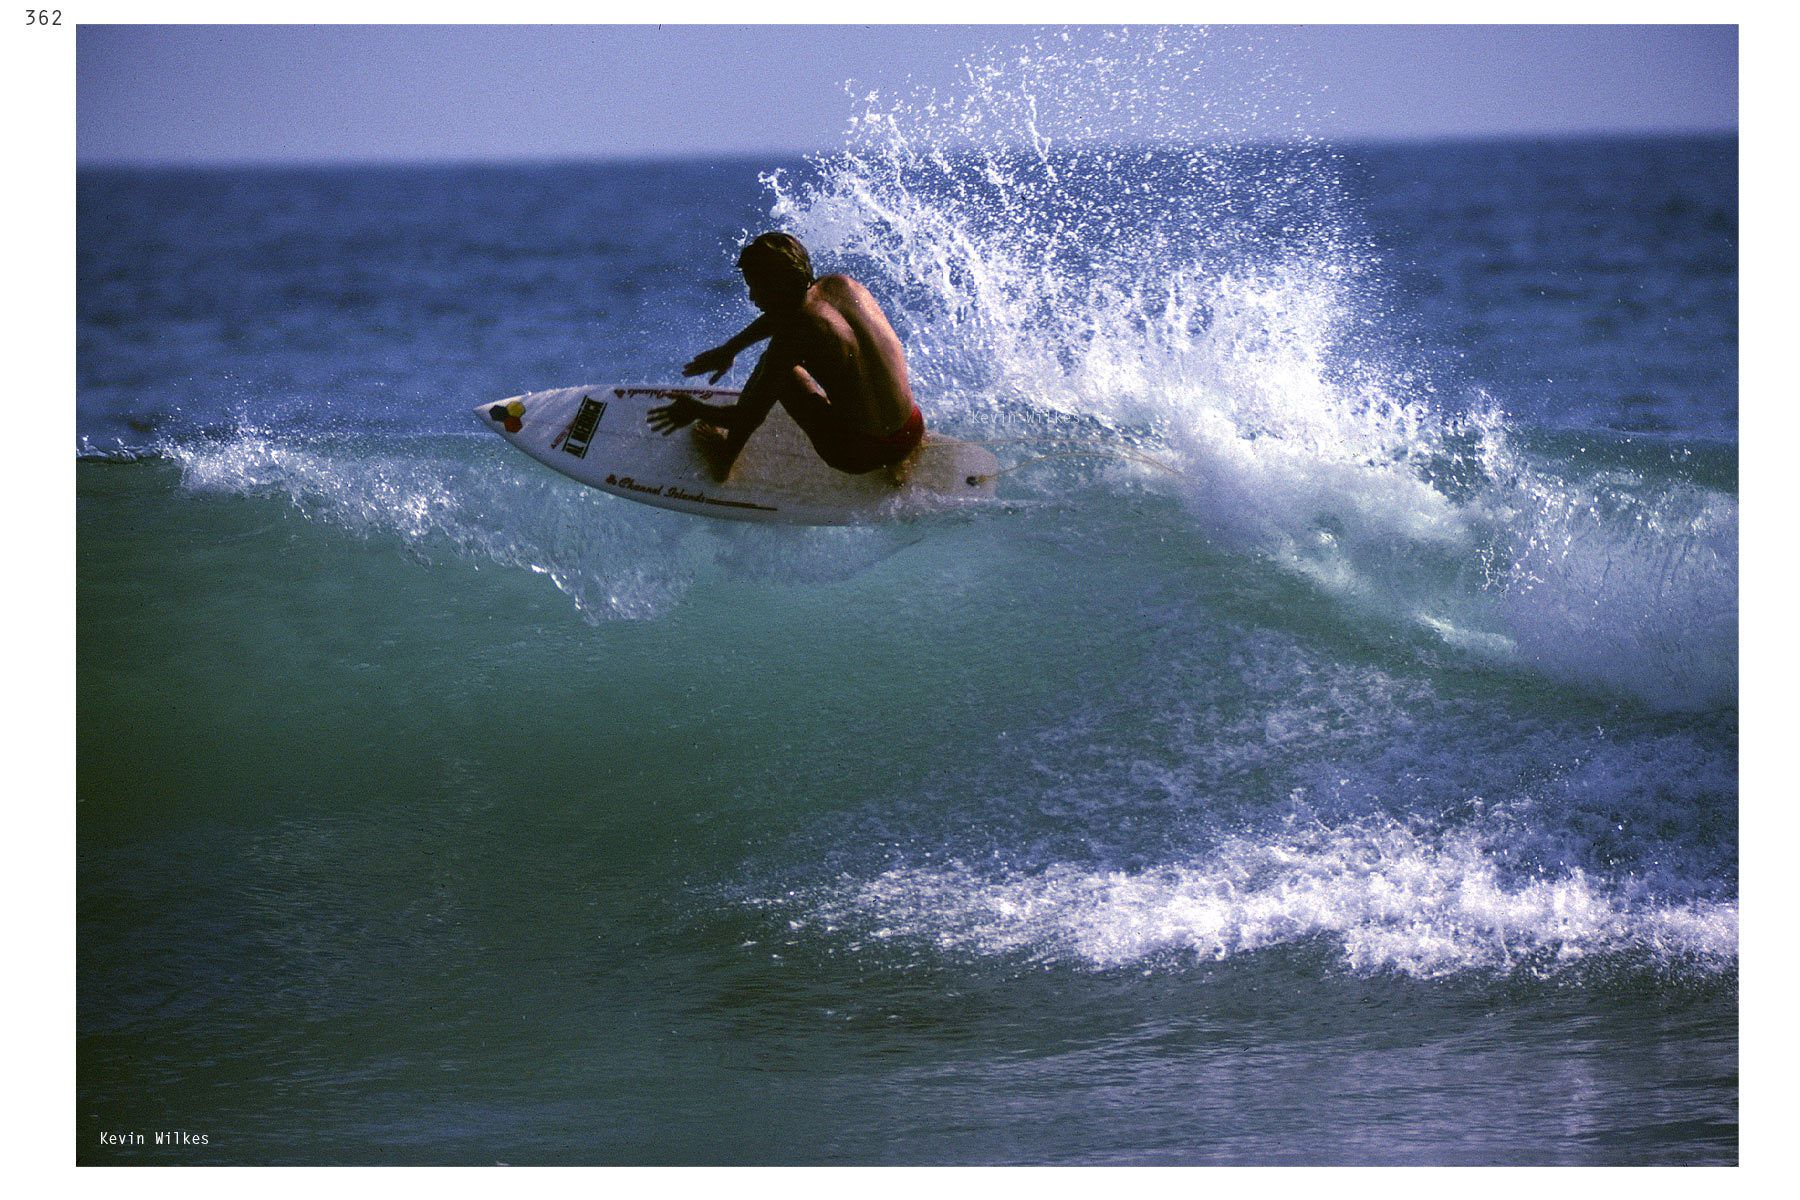 Tom Curren. Trestles August 1982. Kevin Wilkes copyright 2019.